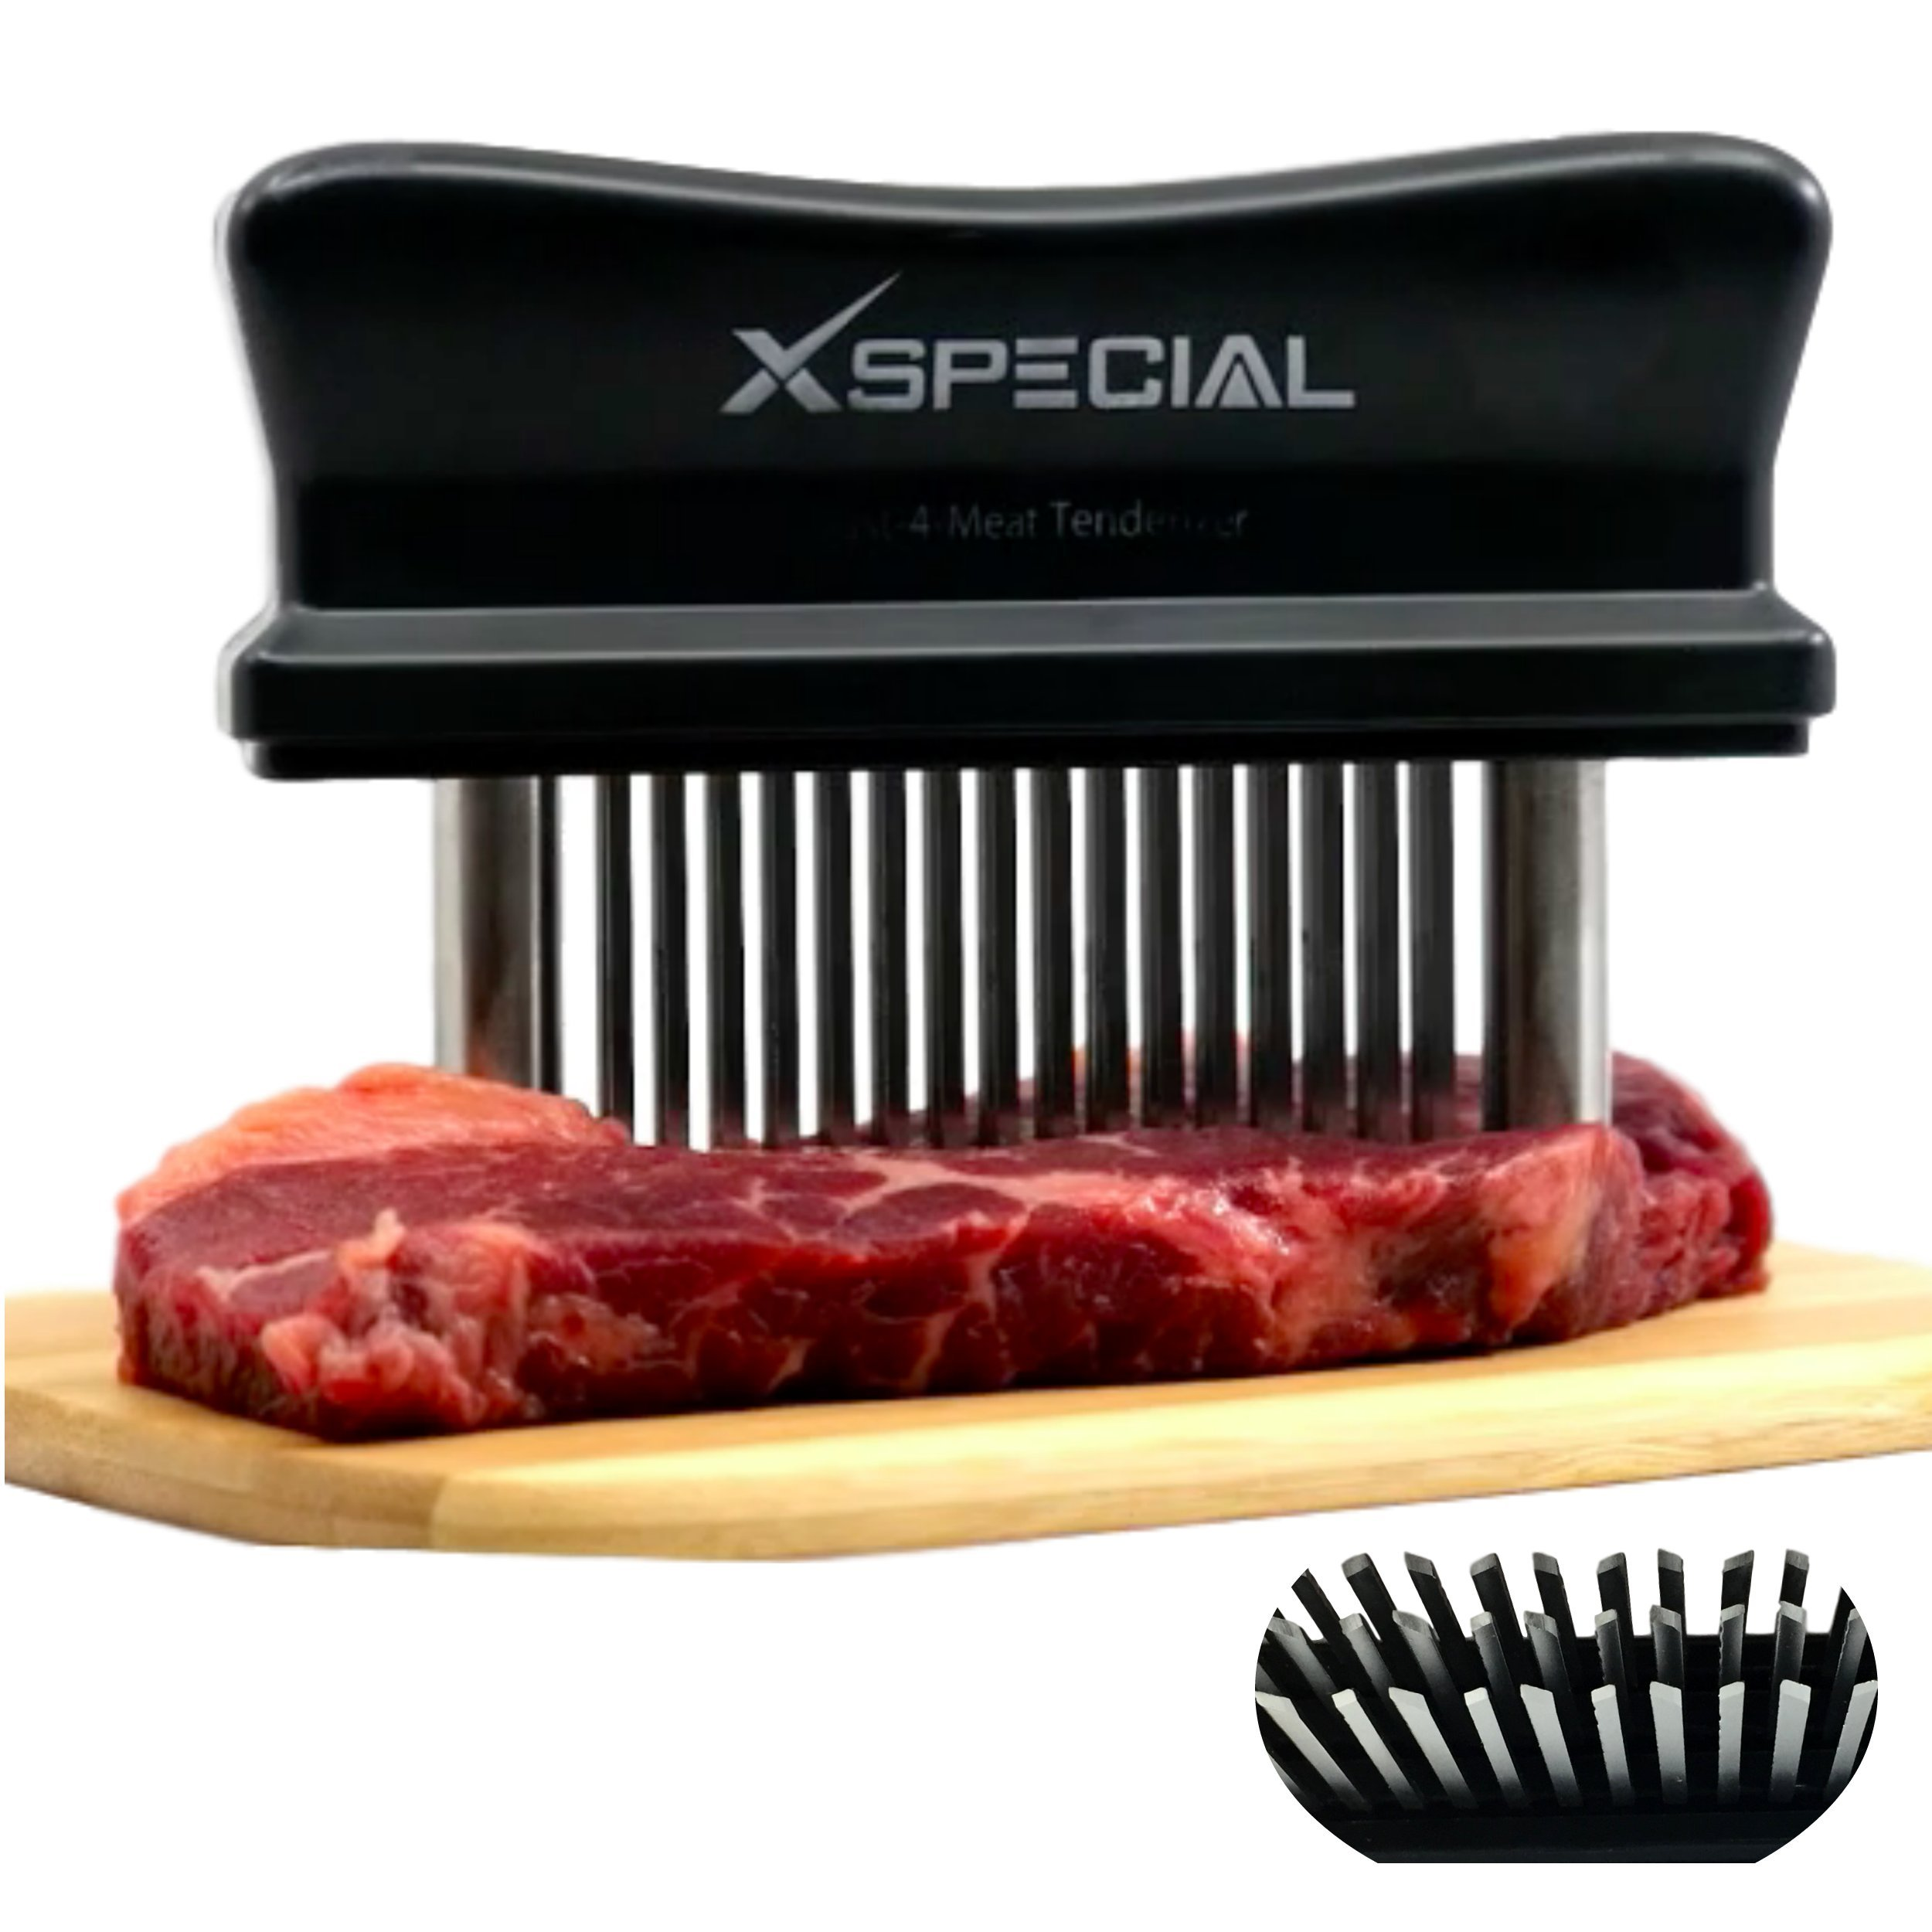 XSpecial Meat Tenderizer Tool - TRY IT NOW,Taste The Tenderness or REFUNDED > Kitchen Gadget Tenderizers 48 Blades Stainless Steel Needle = Best For Tenderizing,BBQ,Marinade & Flavor Maximizer